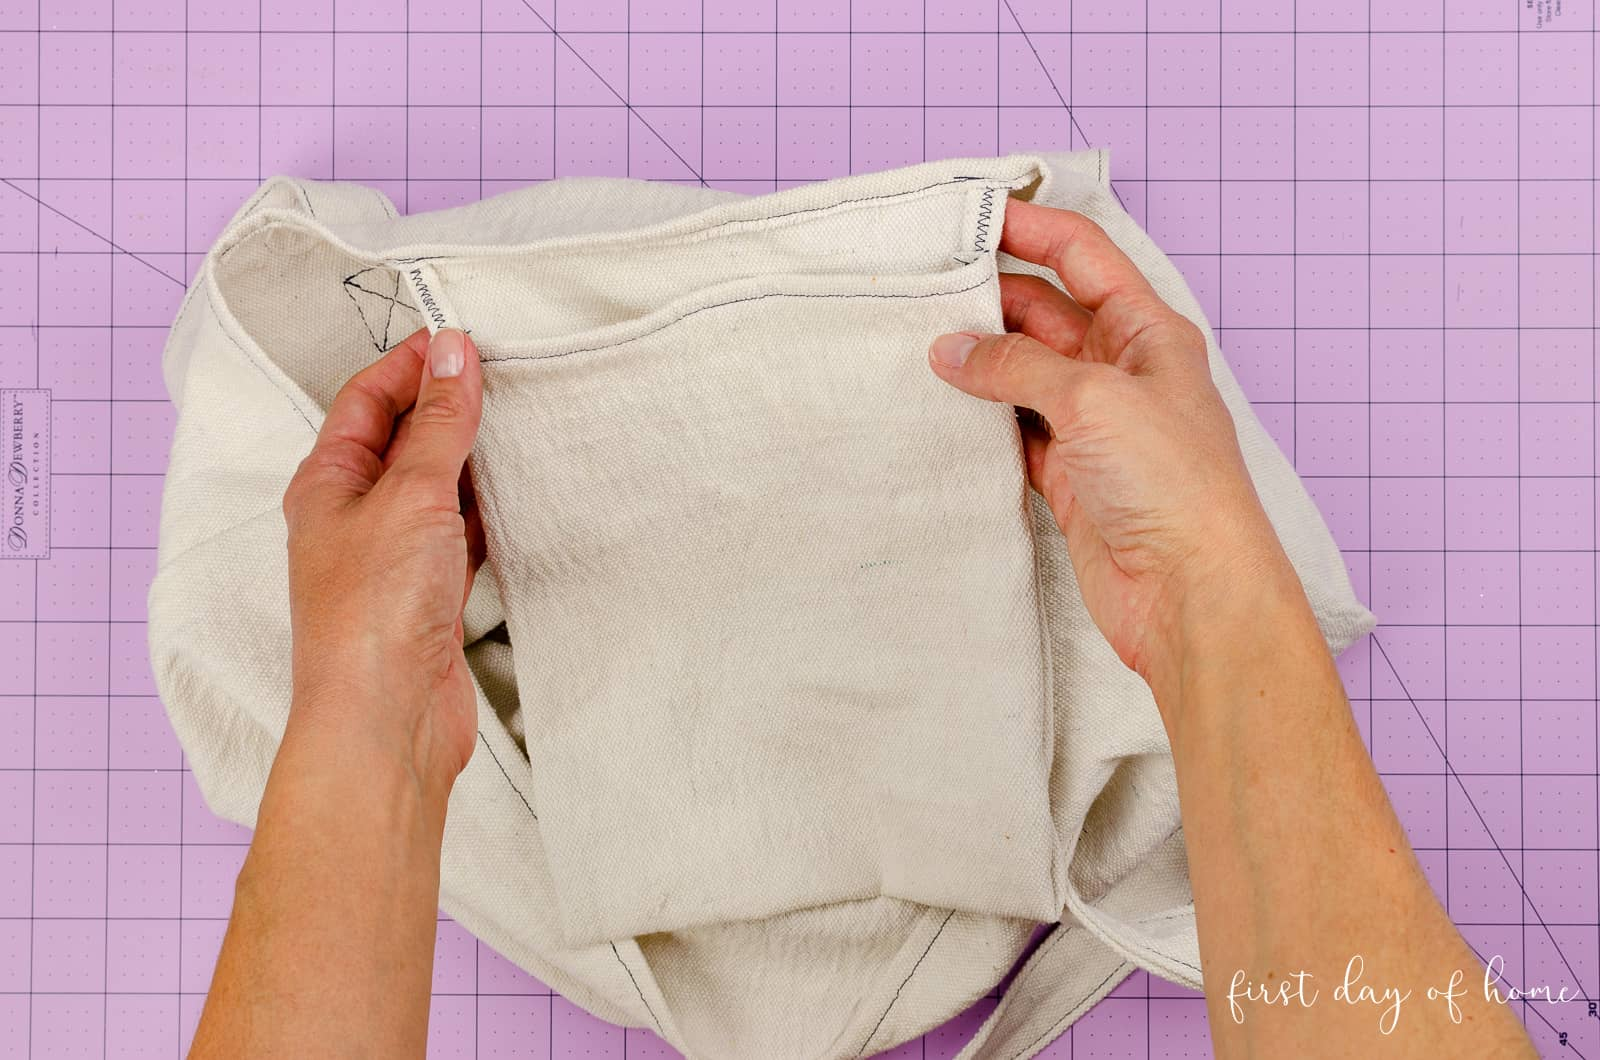 Inner pocket included when sewing tote bags from drop cloth fabric